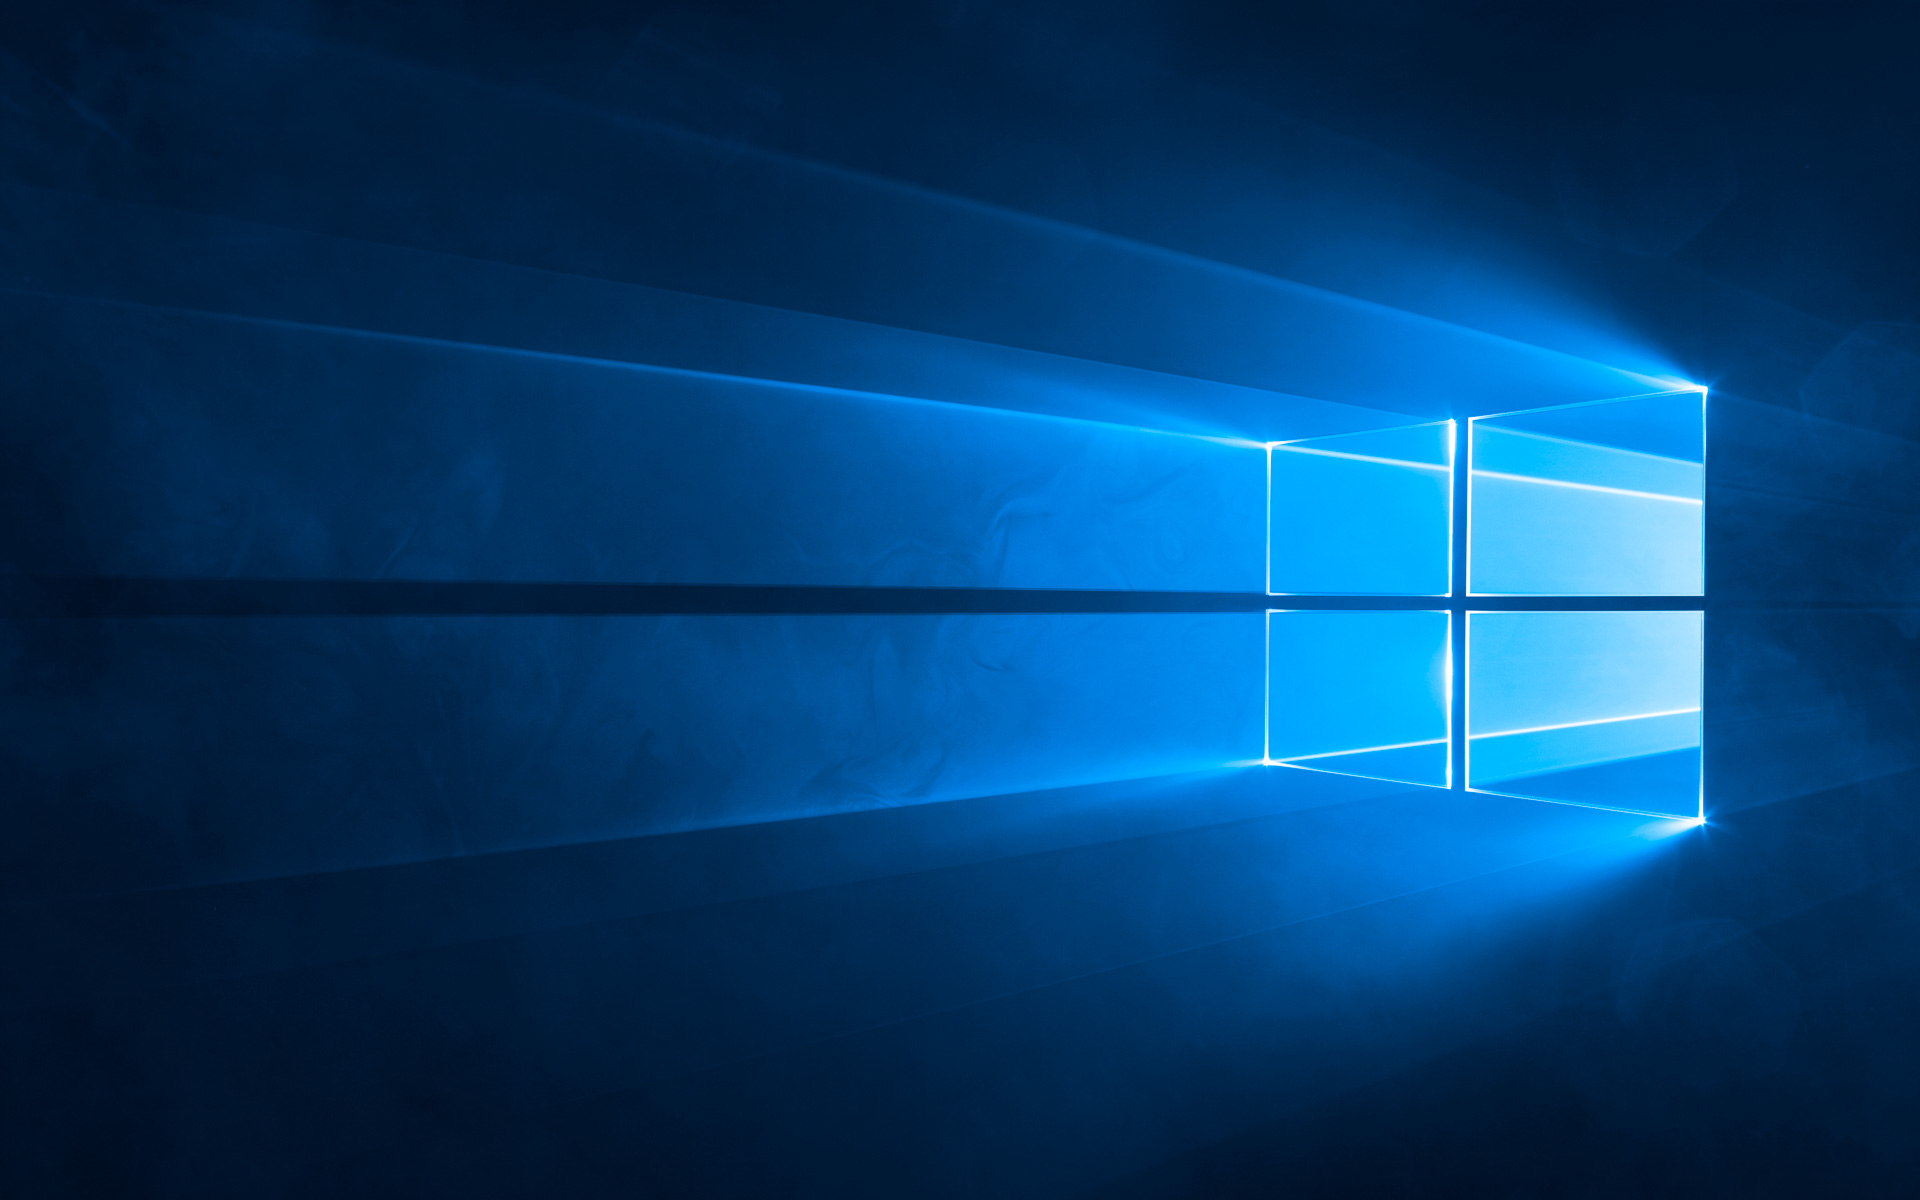 Windows 10 Hero Wallpaper Original   Windows 10   OSBetaArchive 1920x1200